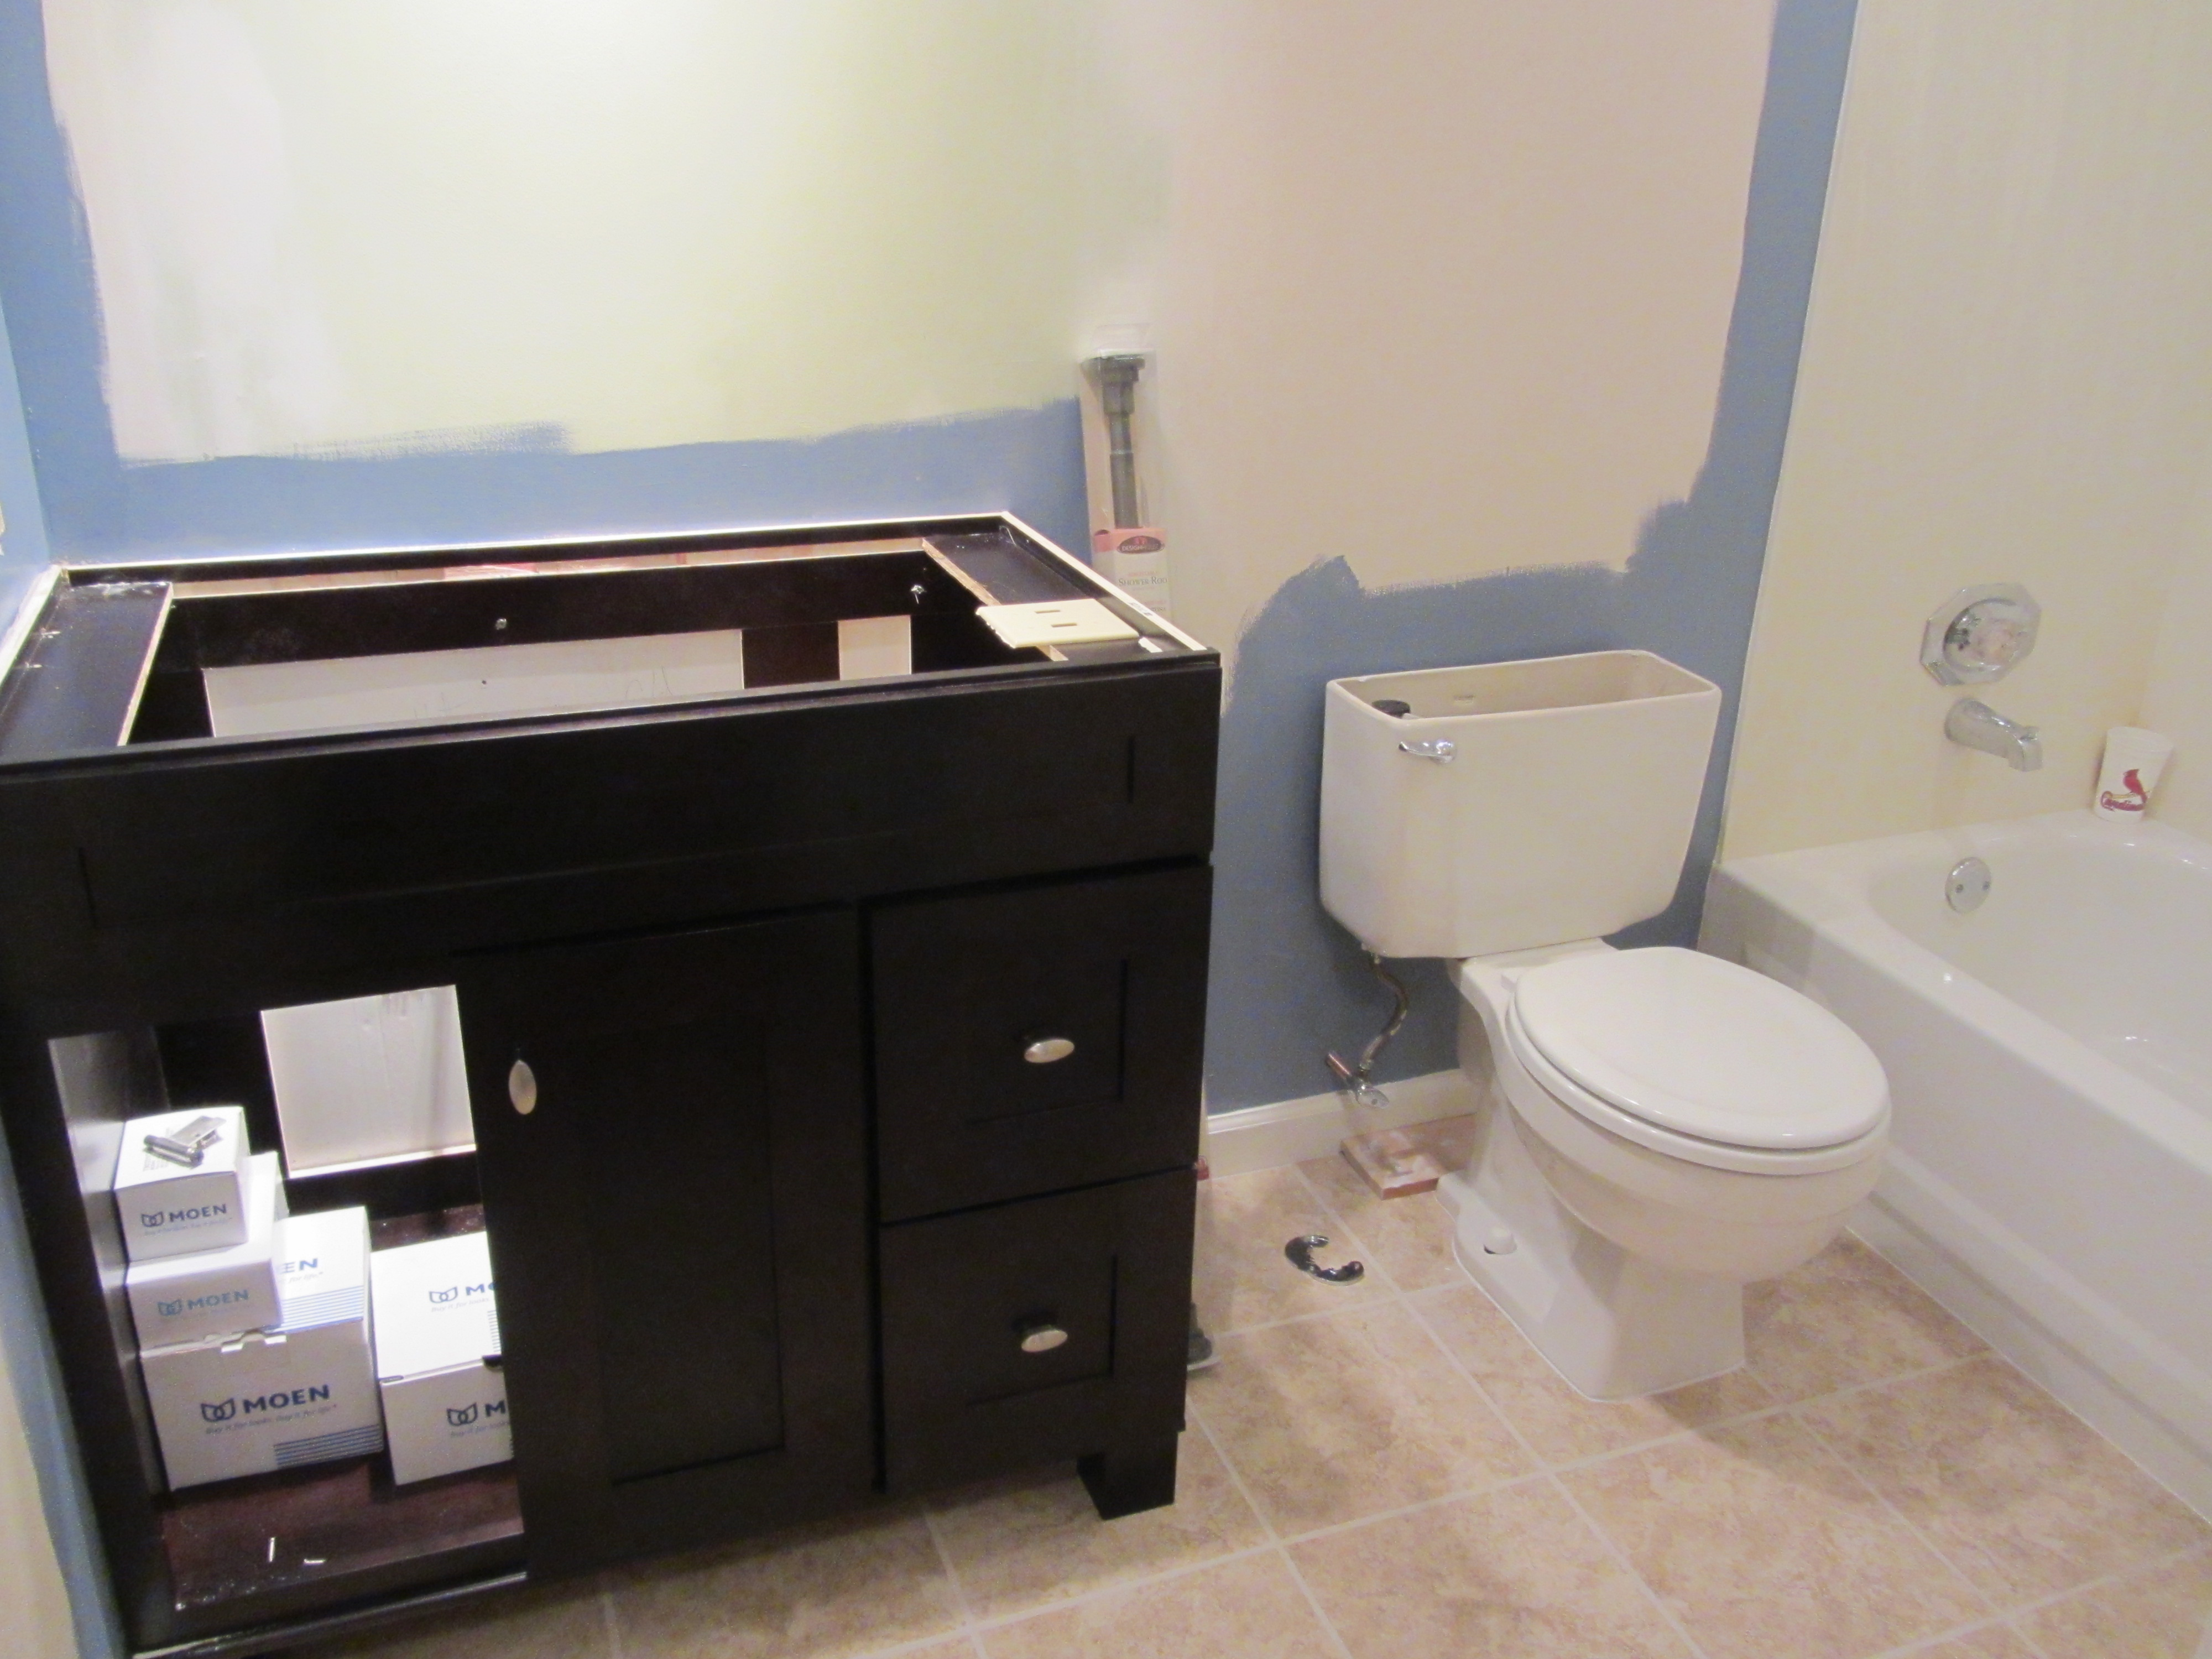 Brilliant Small Bathroom Remodel On A Budget Future Expat Largest Home Design Picture Inspirations Pitcheantrous